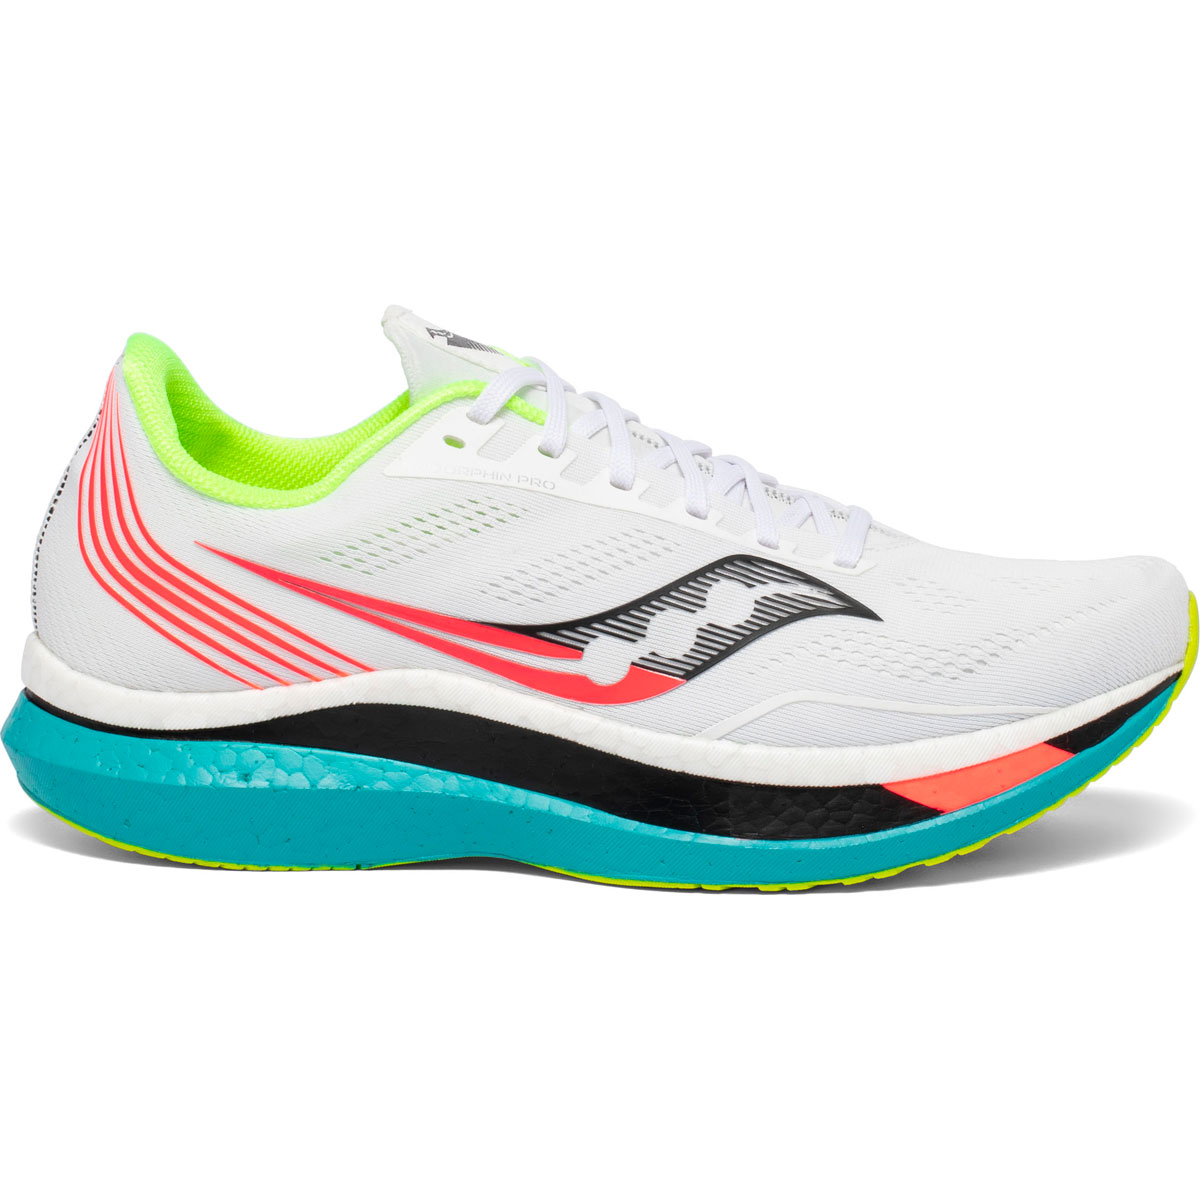 Men's Saucony Endorphin Pro Running Shoe - Color: White Mutant (Regular Width) - Size: 7, White Mutant, large, image 1